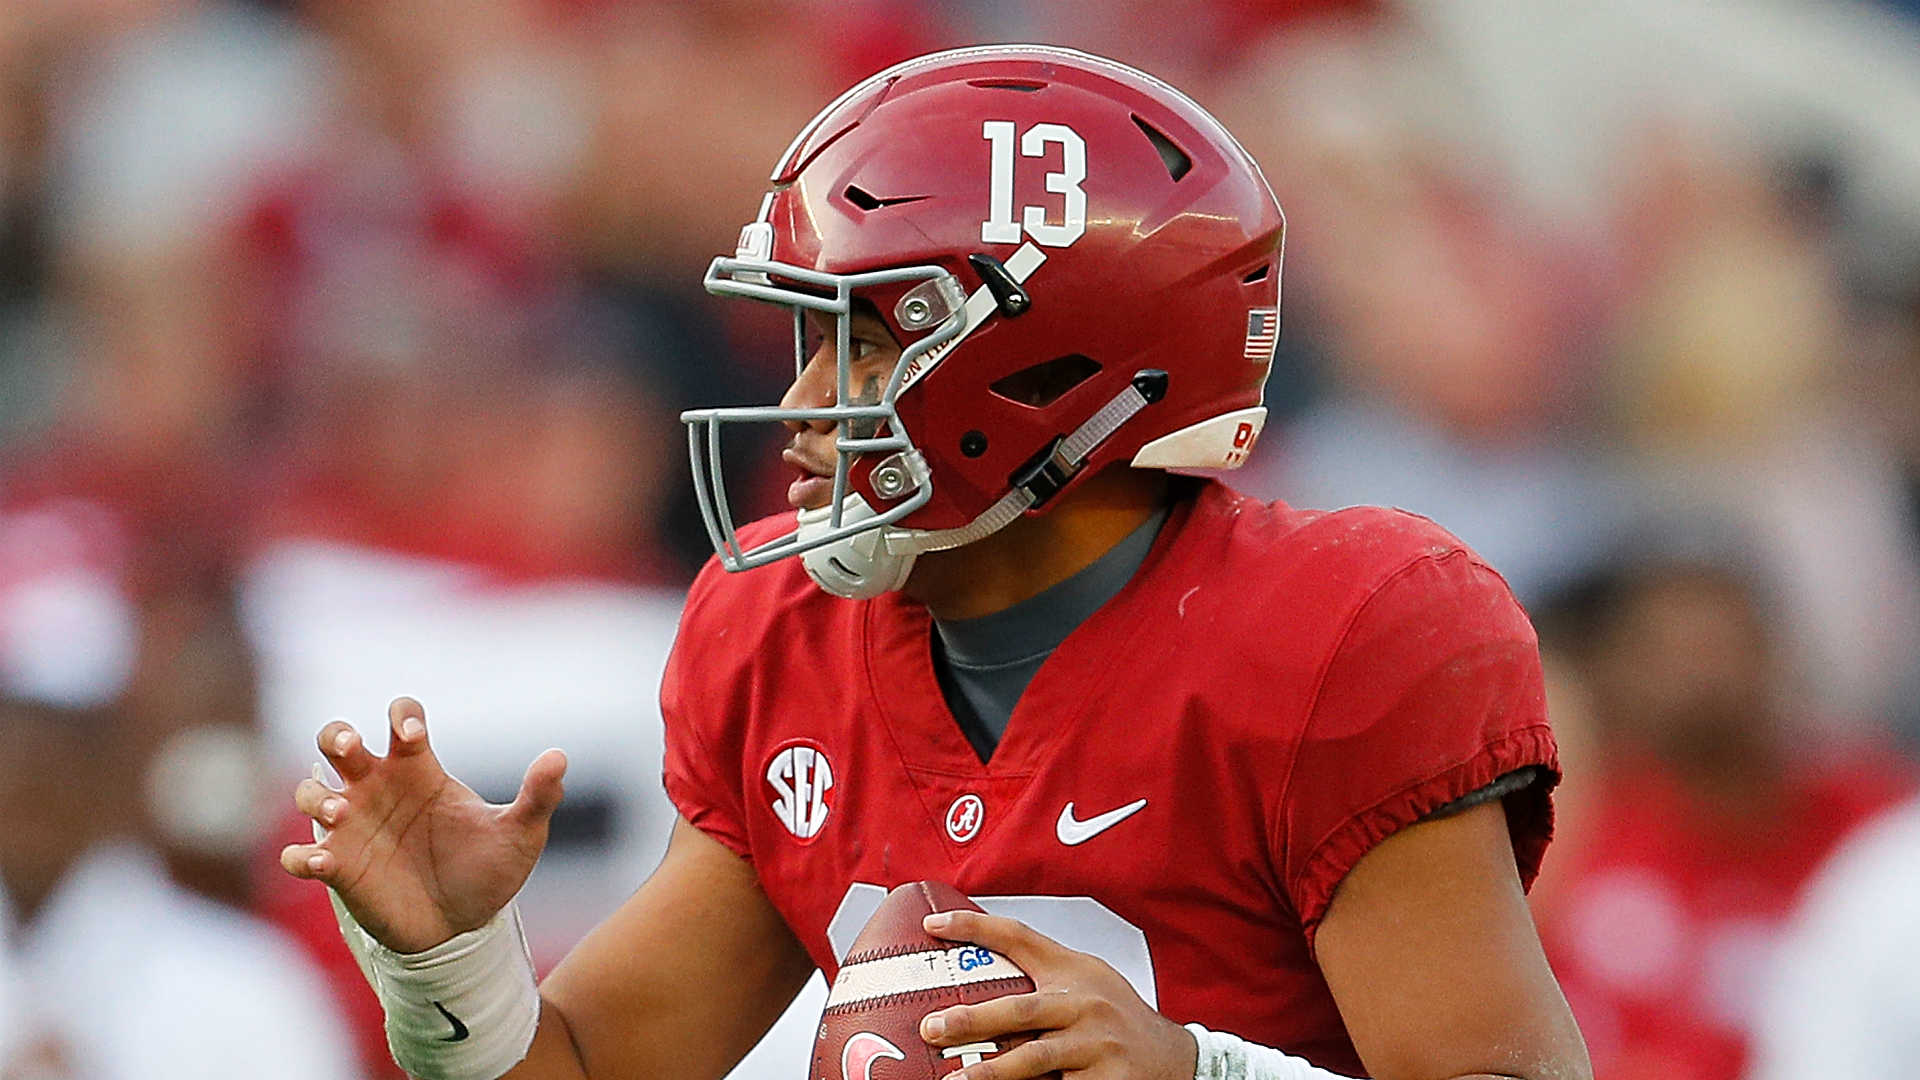 Tua Tagovailoa suffers dislocated hip, expected to make 'full recovery' per Alabama